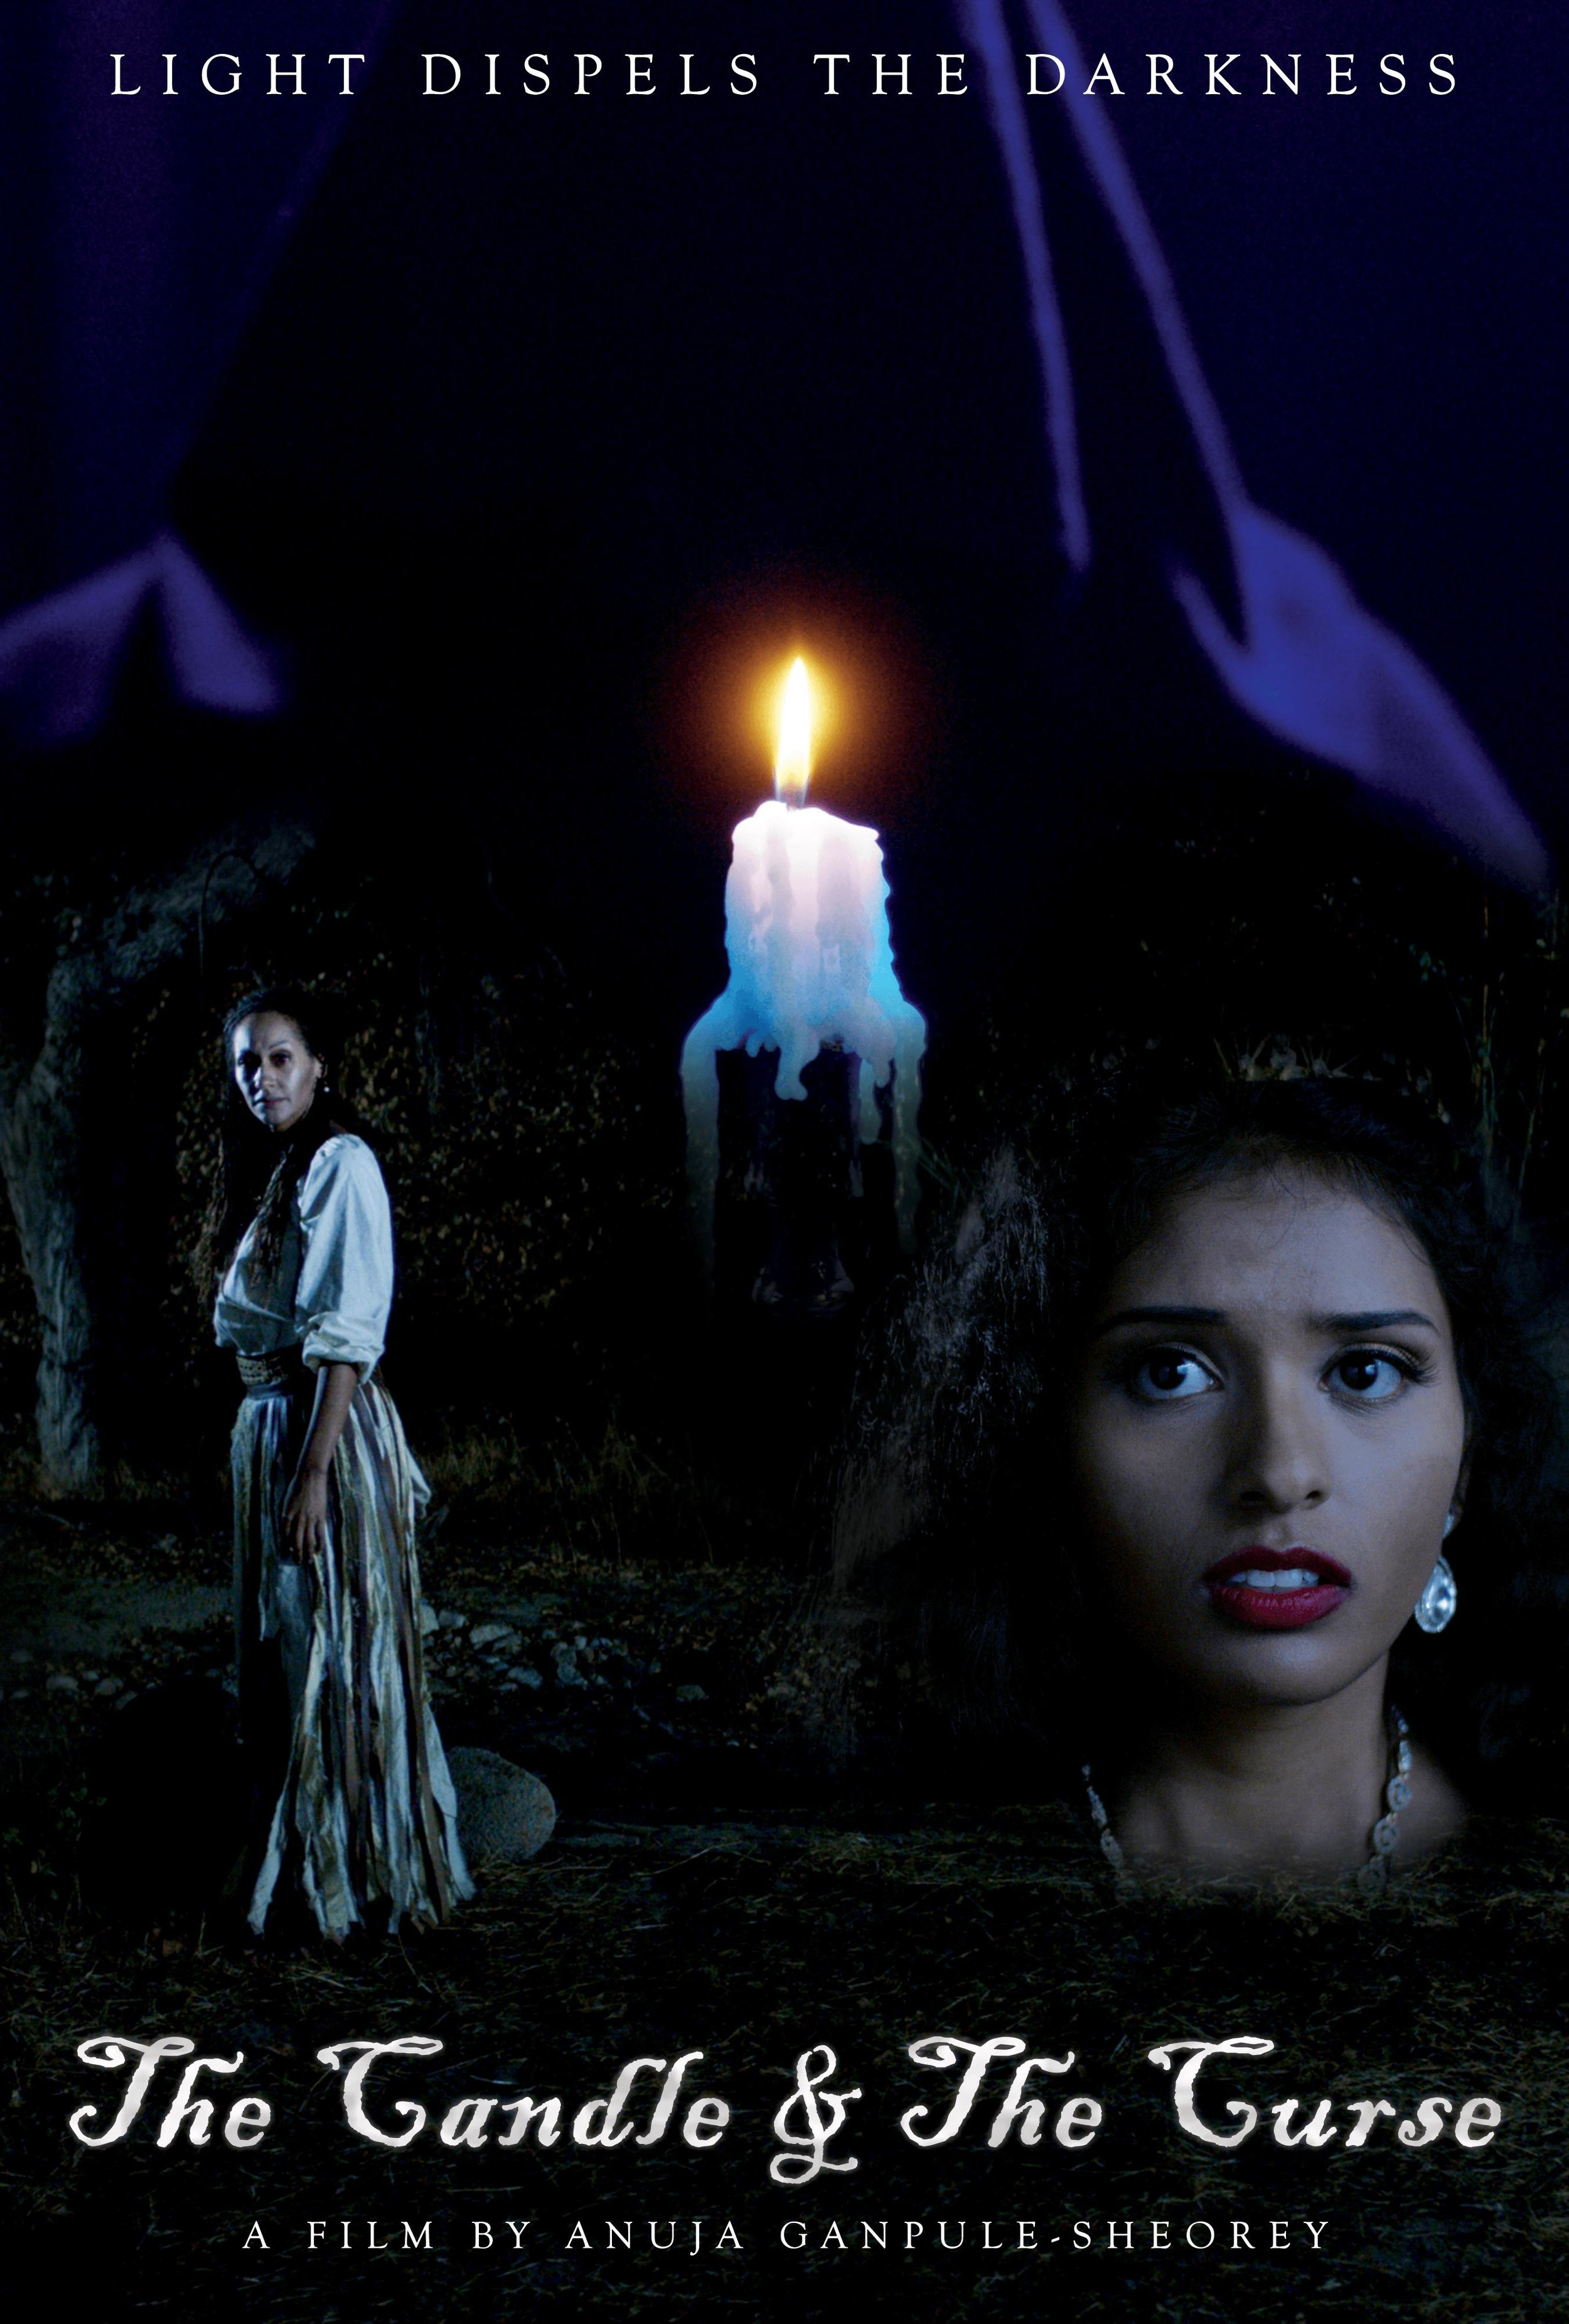 Feature Film (TBA 2019) — COMPOSER  Based loosely on Indian/Asian mythology, a princess must travel to the underworld to save her prince.  Featuring a 90 minute live orchestra score recorded by Budapest Orchestra